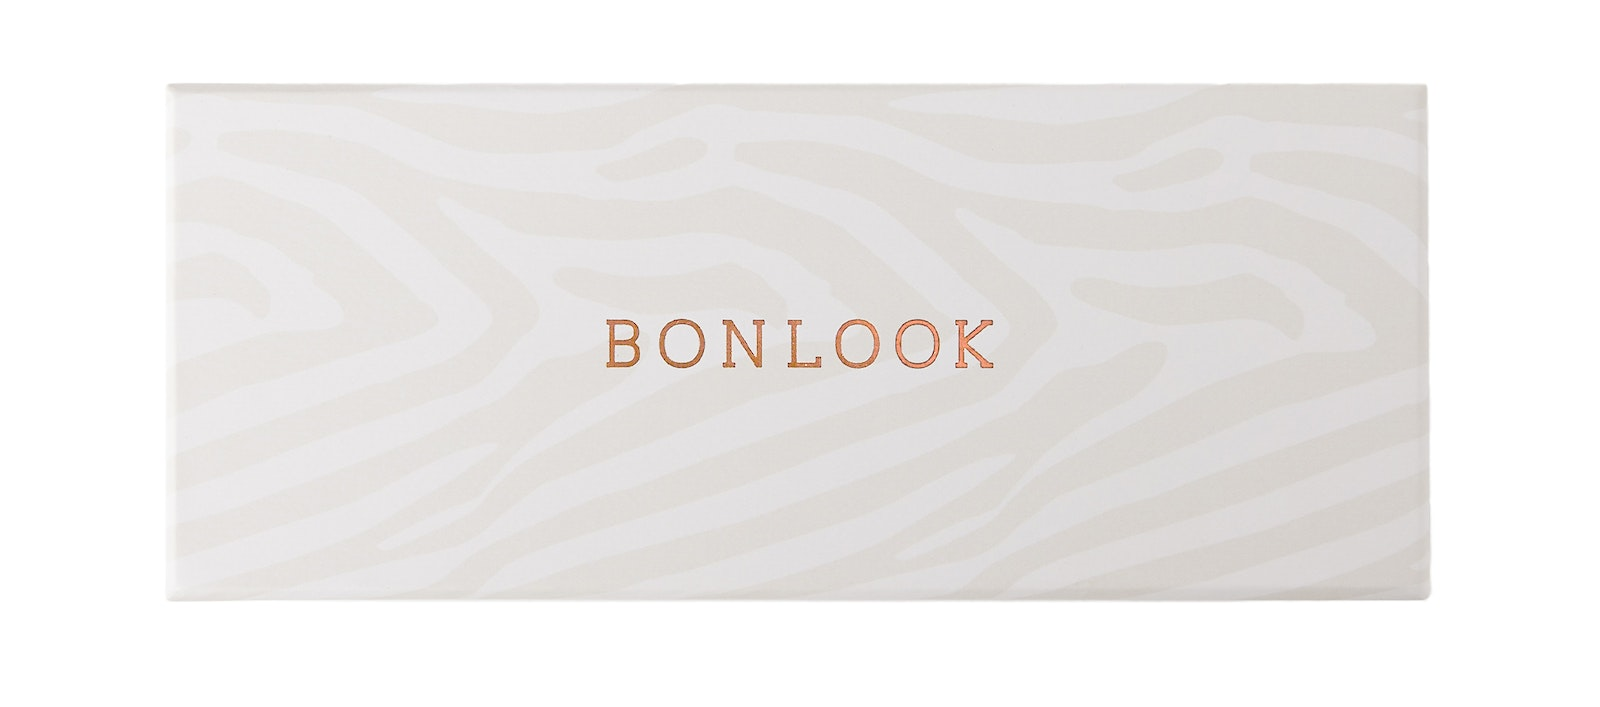 Affordable Fashion Glasses Accessory Men Women New Classic Bonlook Case Zebra Tilt